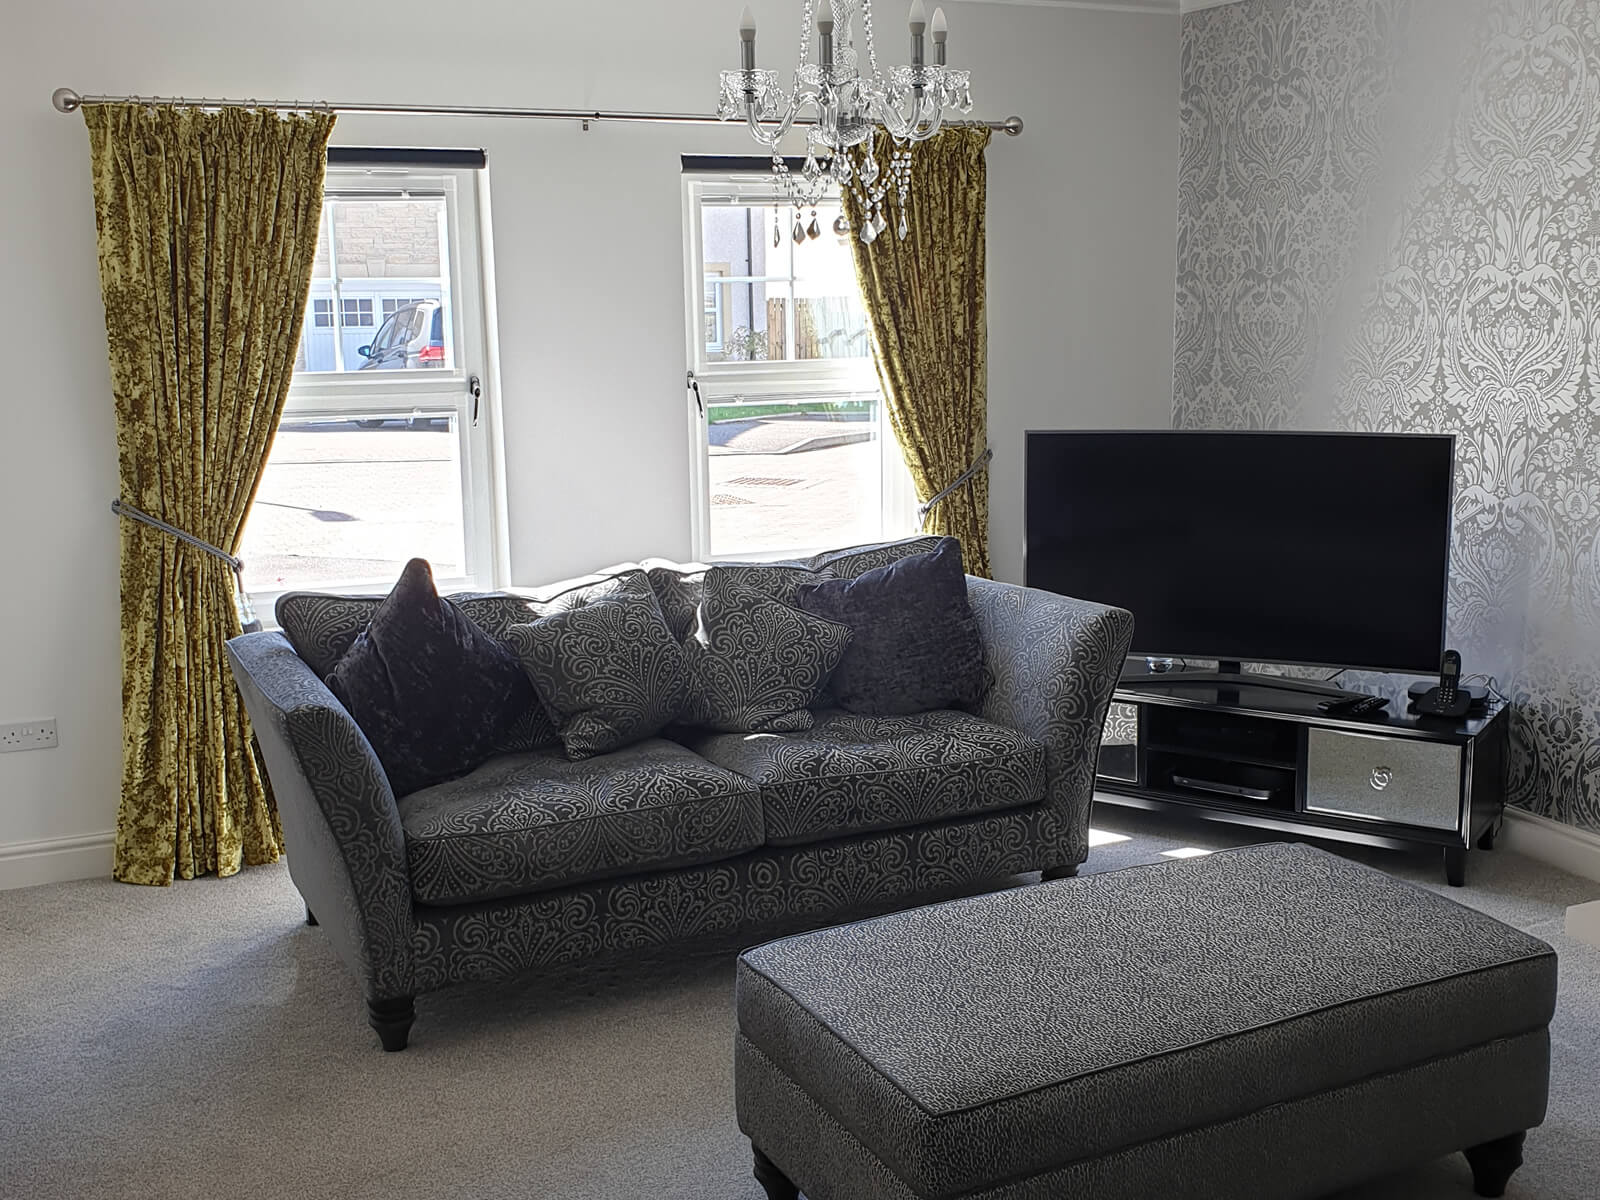 Minimalist lounge with greay sofa, silver patterned wallpaper and yellow curtains